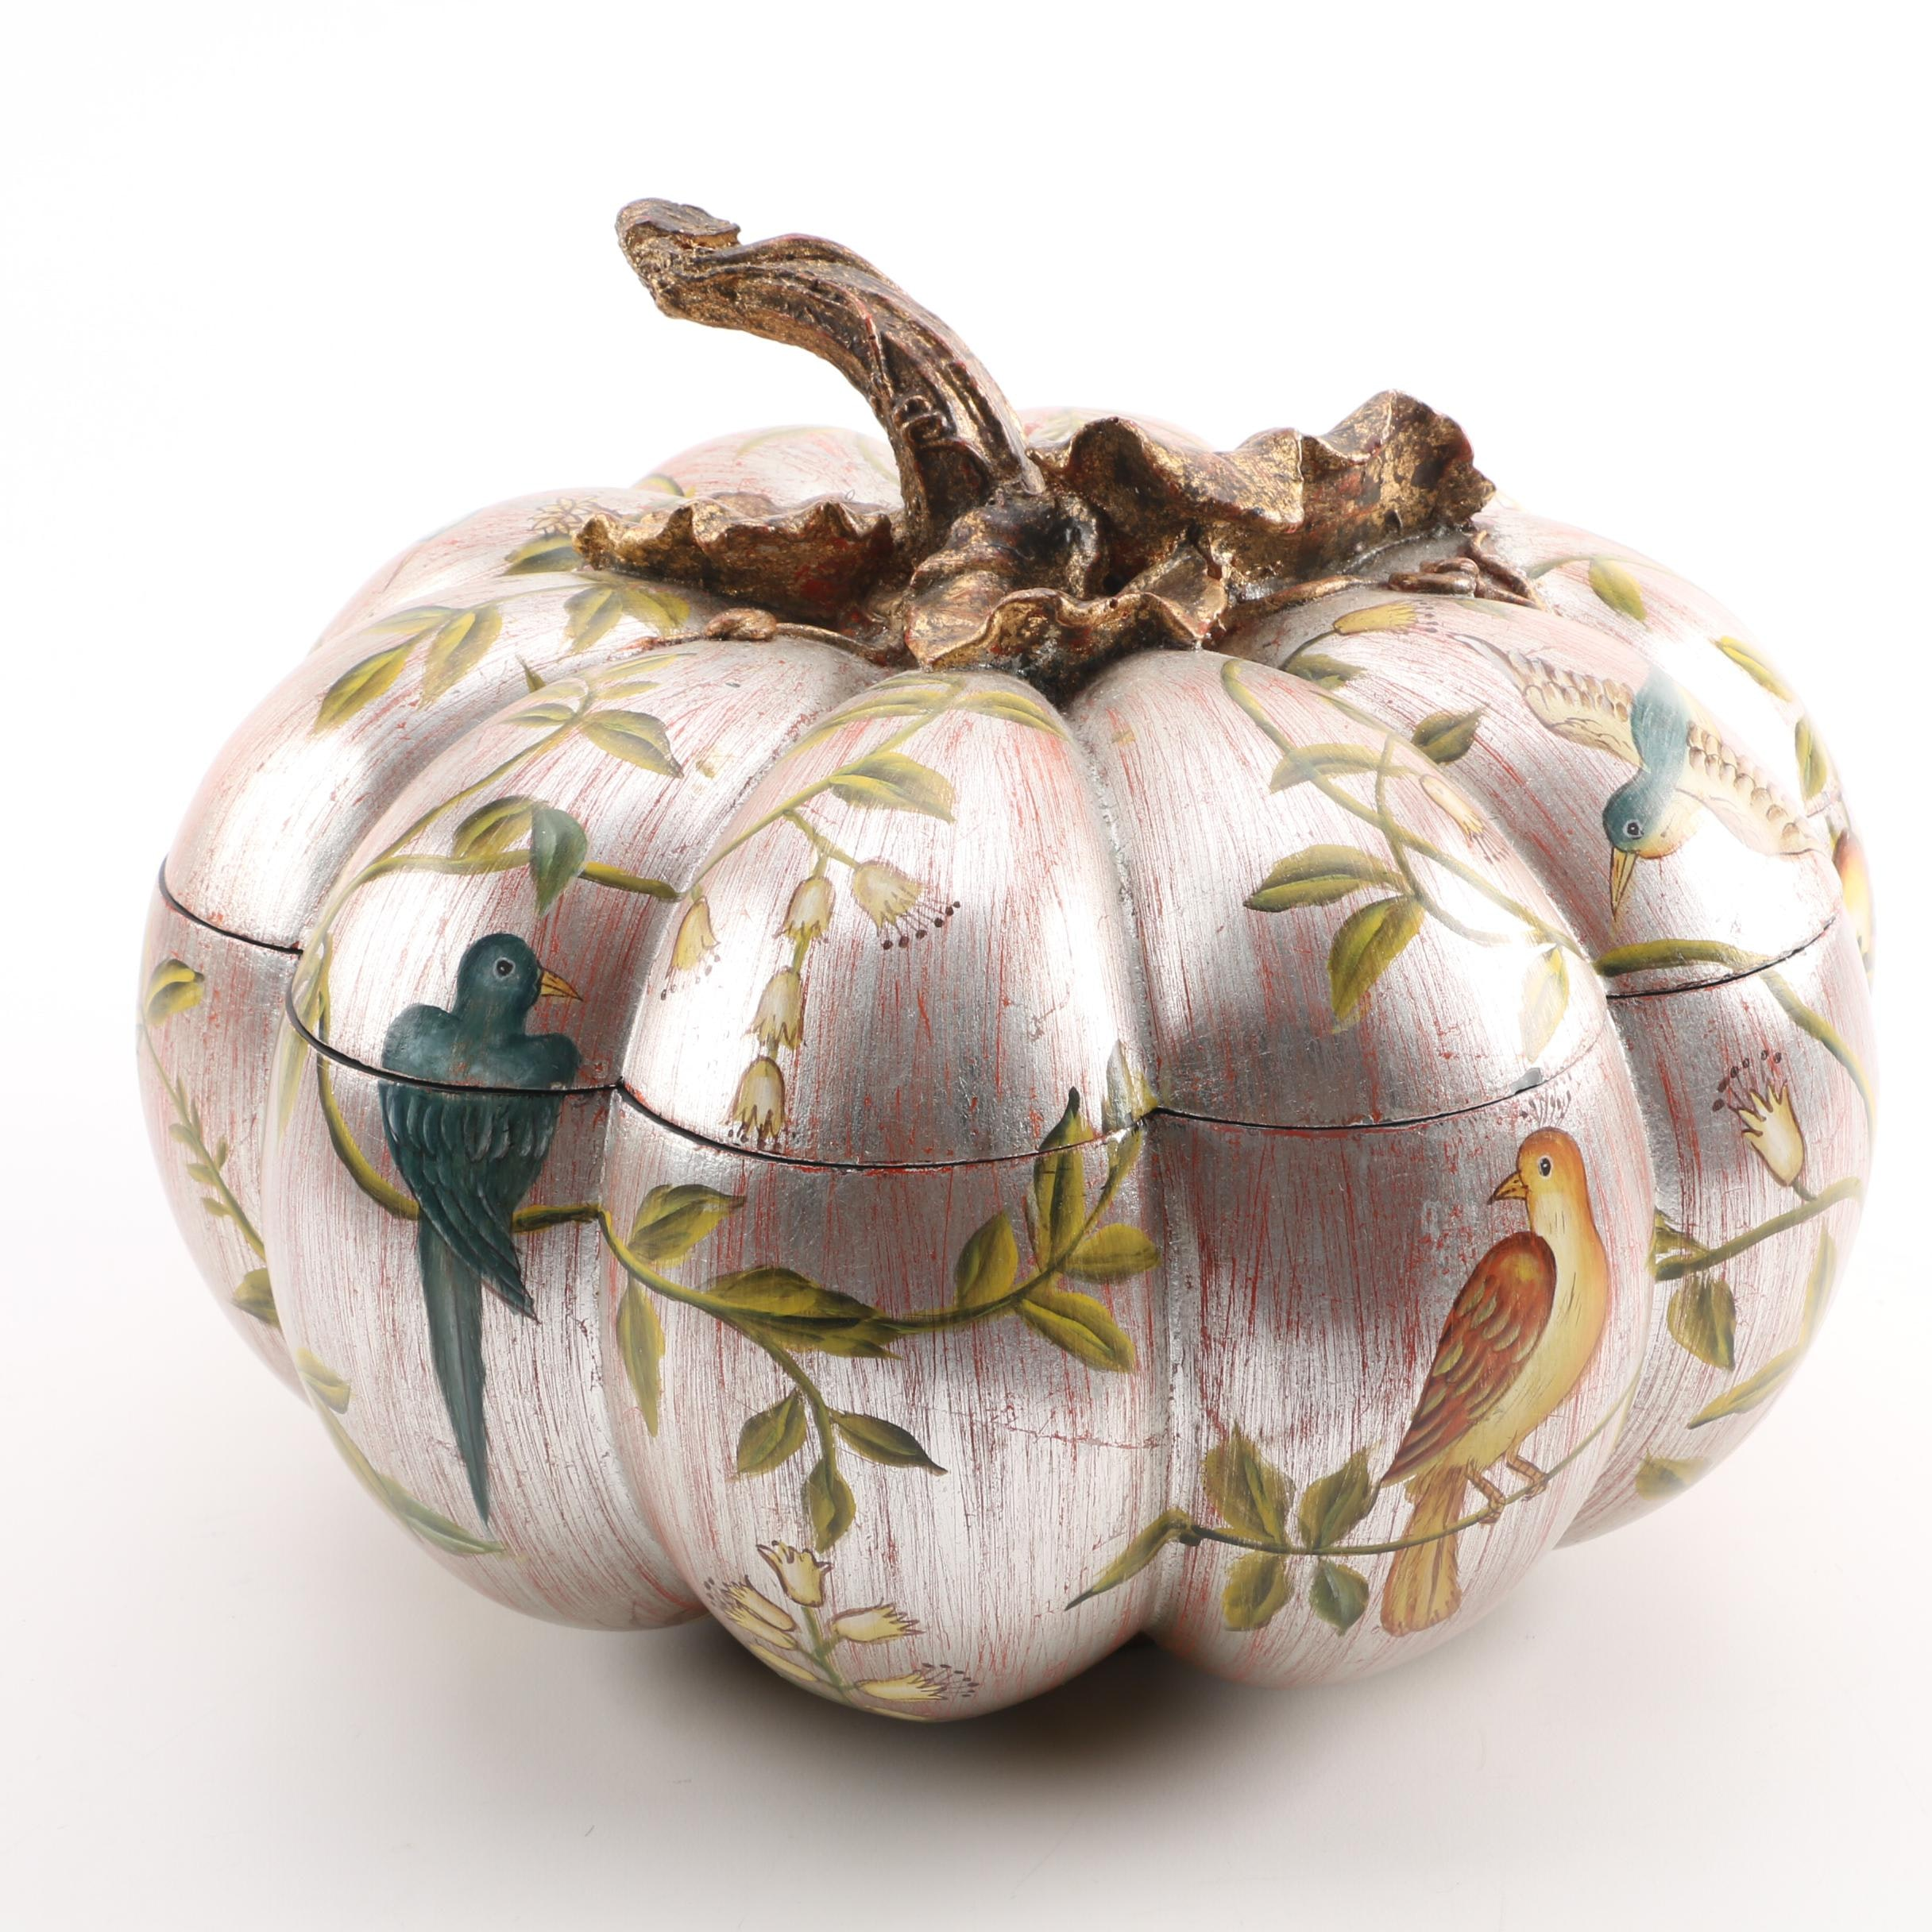 Decorative Resin Pumpkin Shaped Container